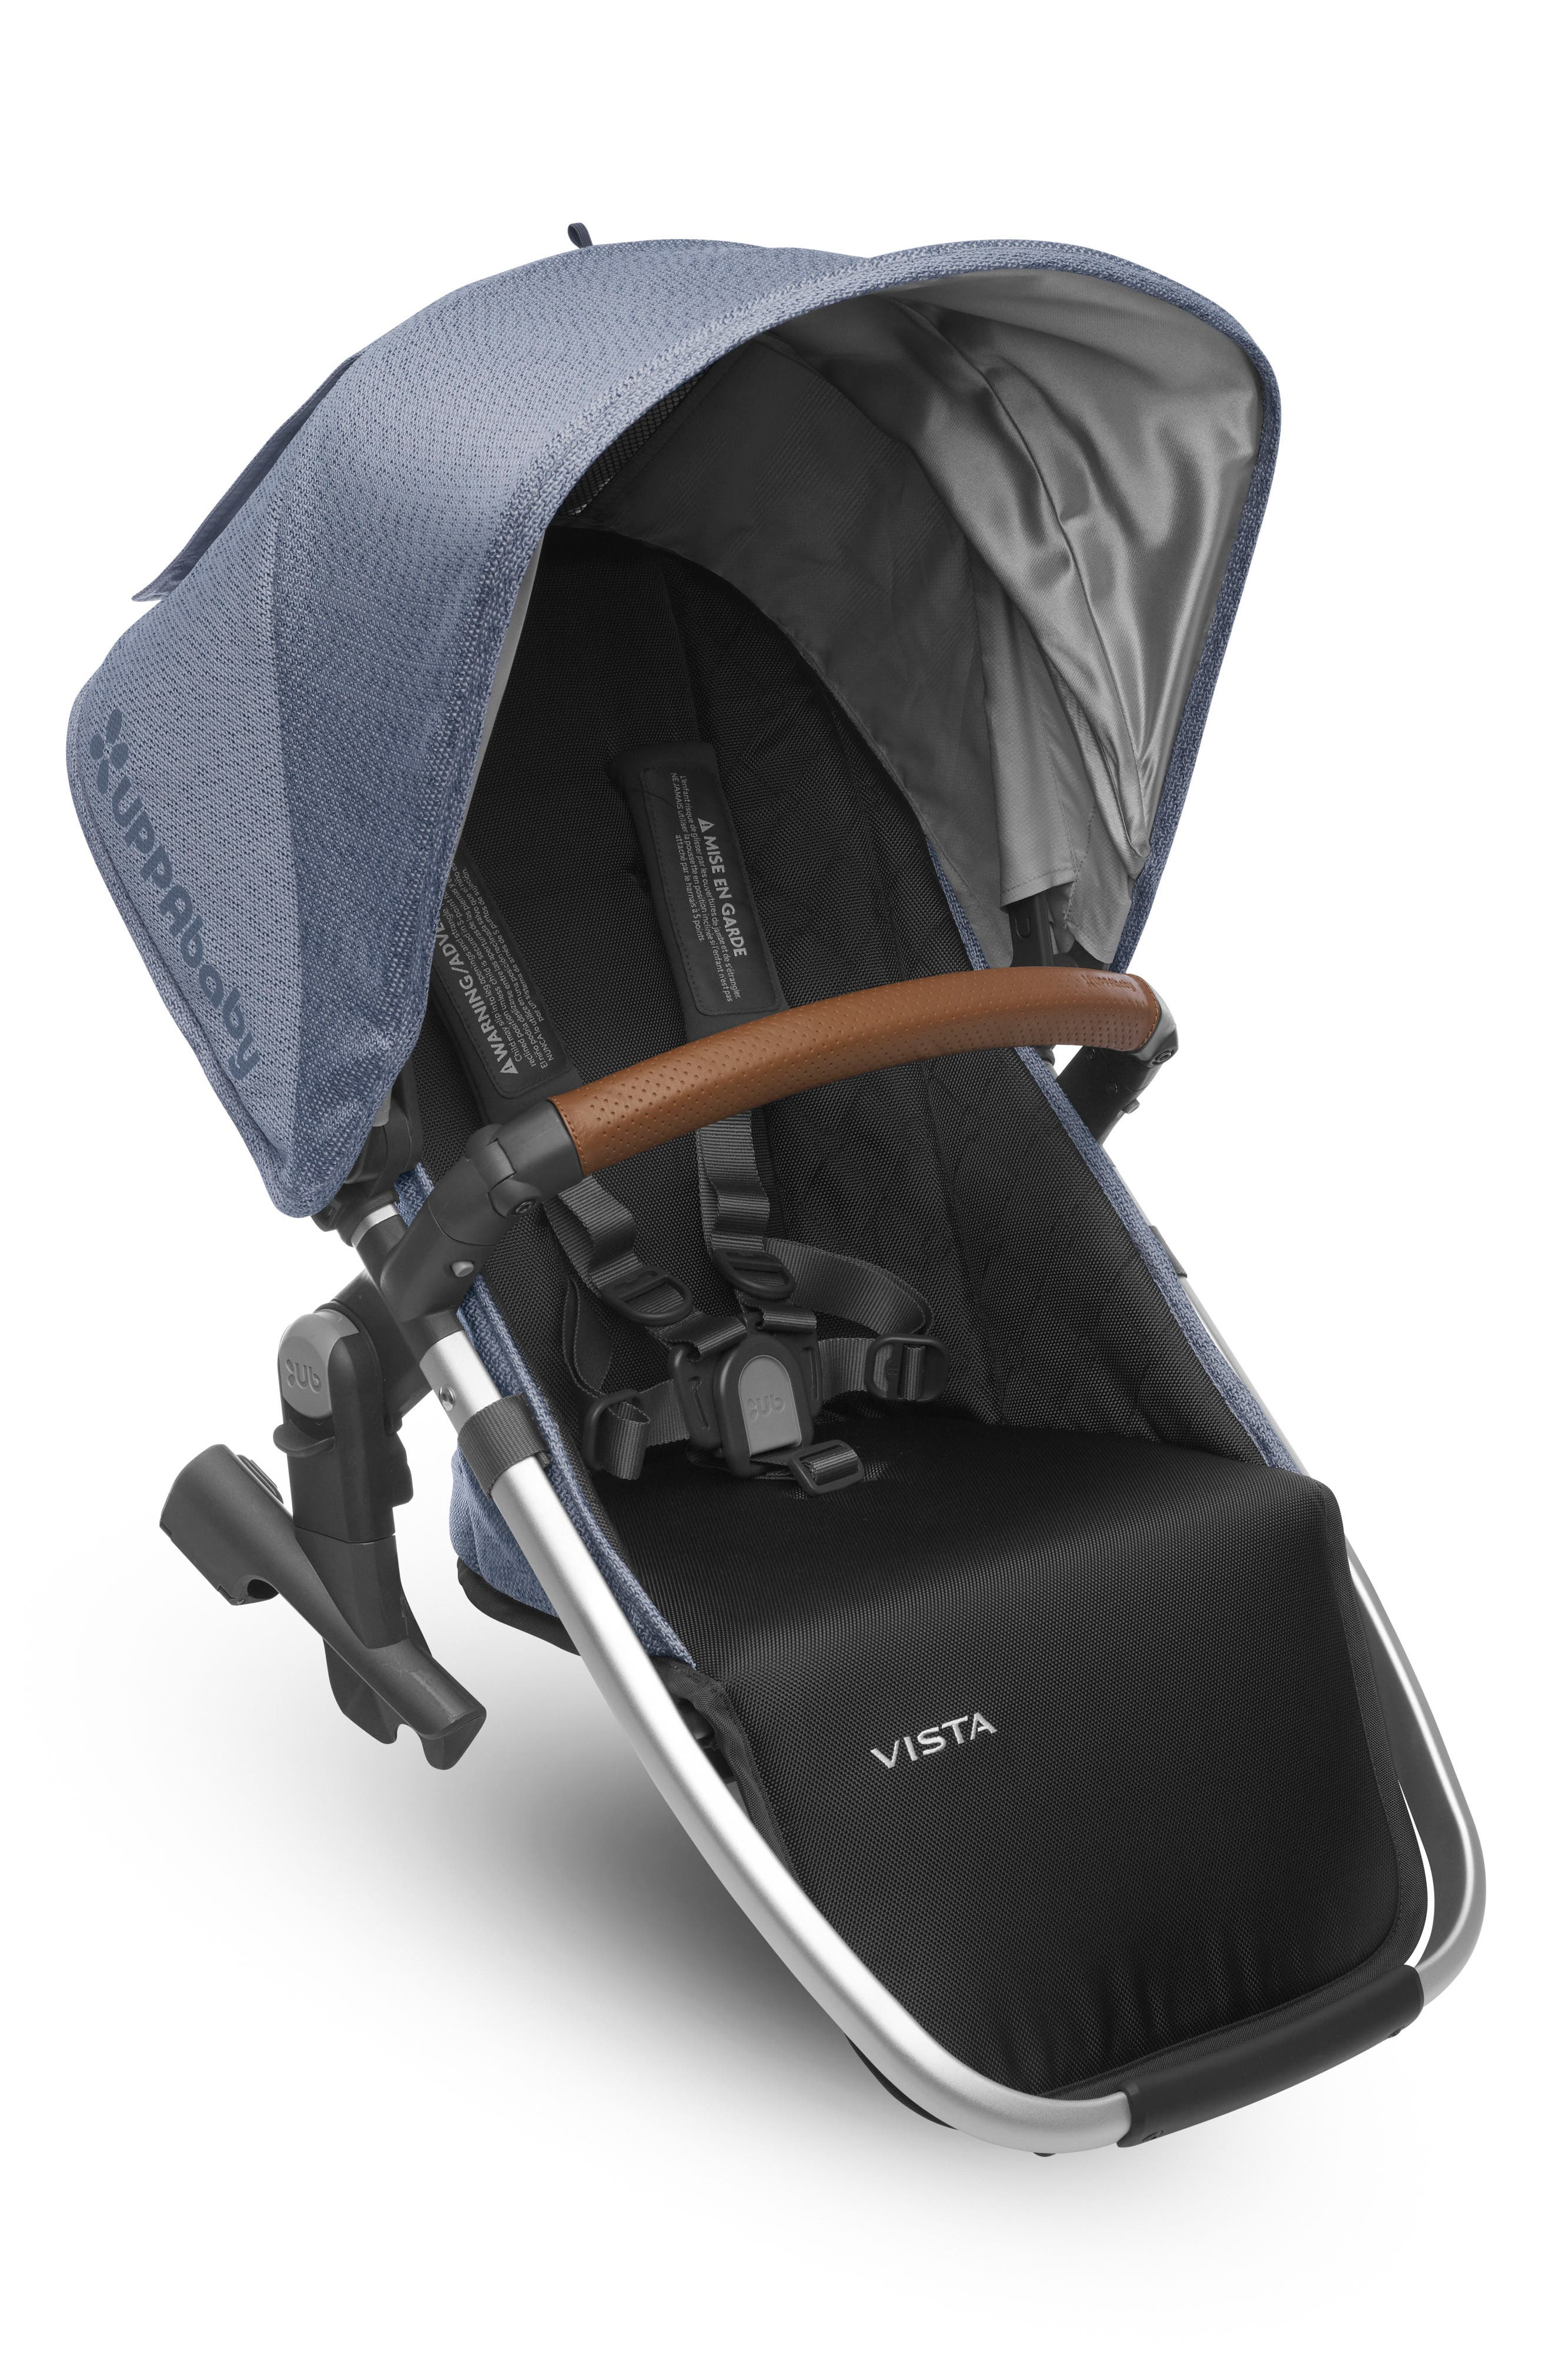 2017 Limited Edition Henry Rumble Seat for VISTA Stroller,                         Main,                         color, 411